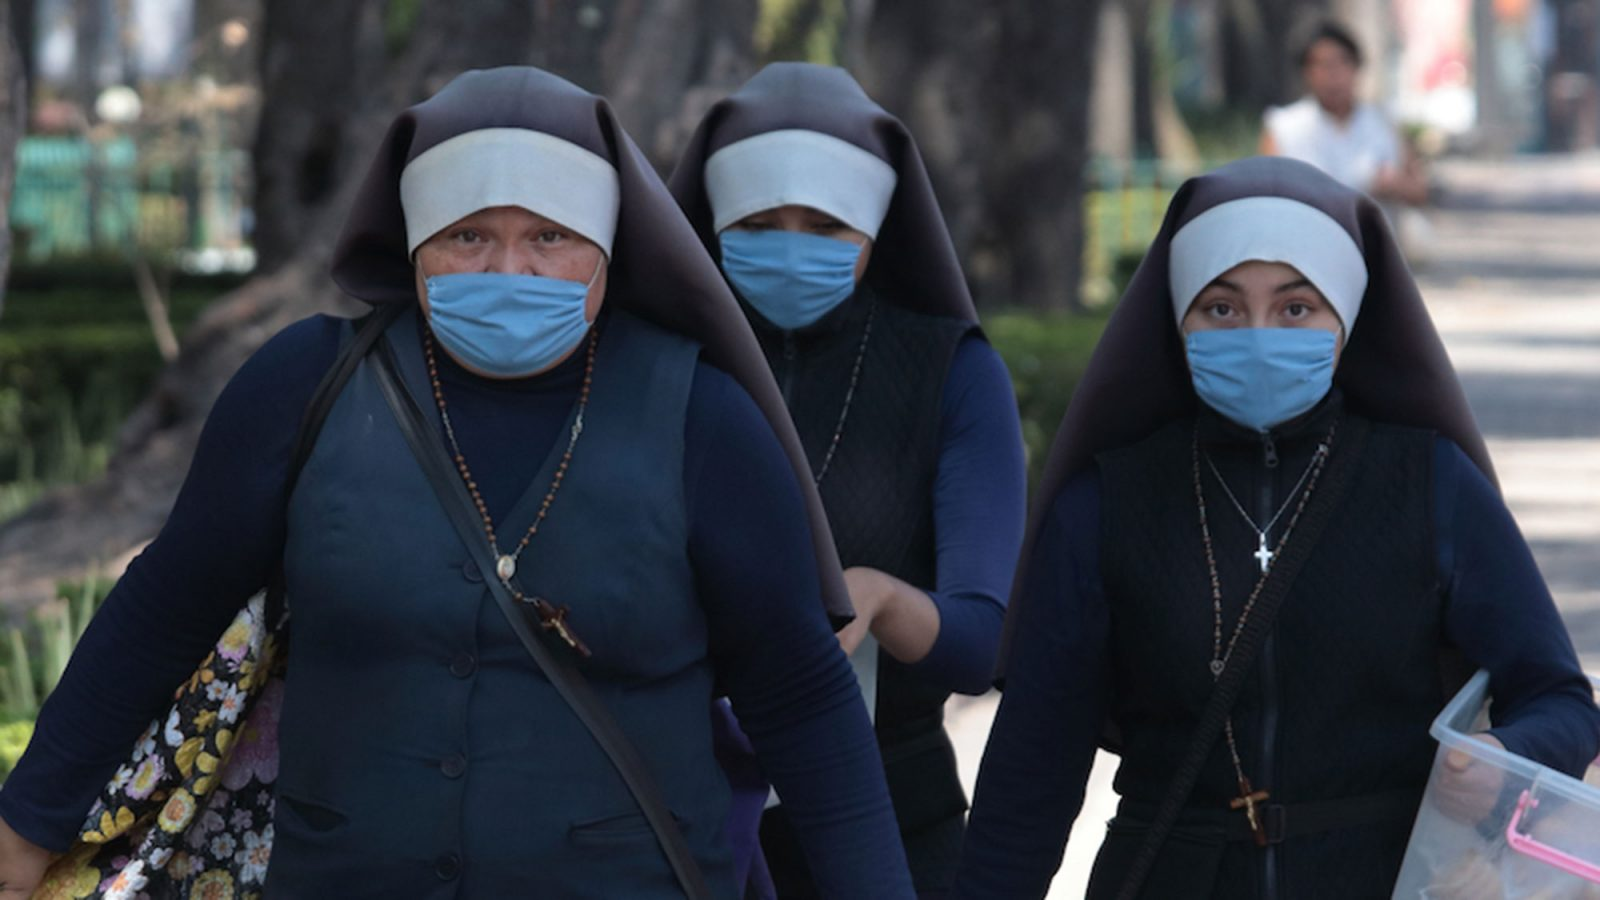 A group of nuns walk while wearing masks.